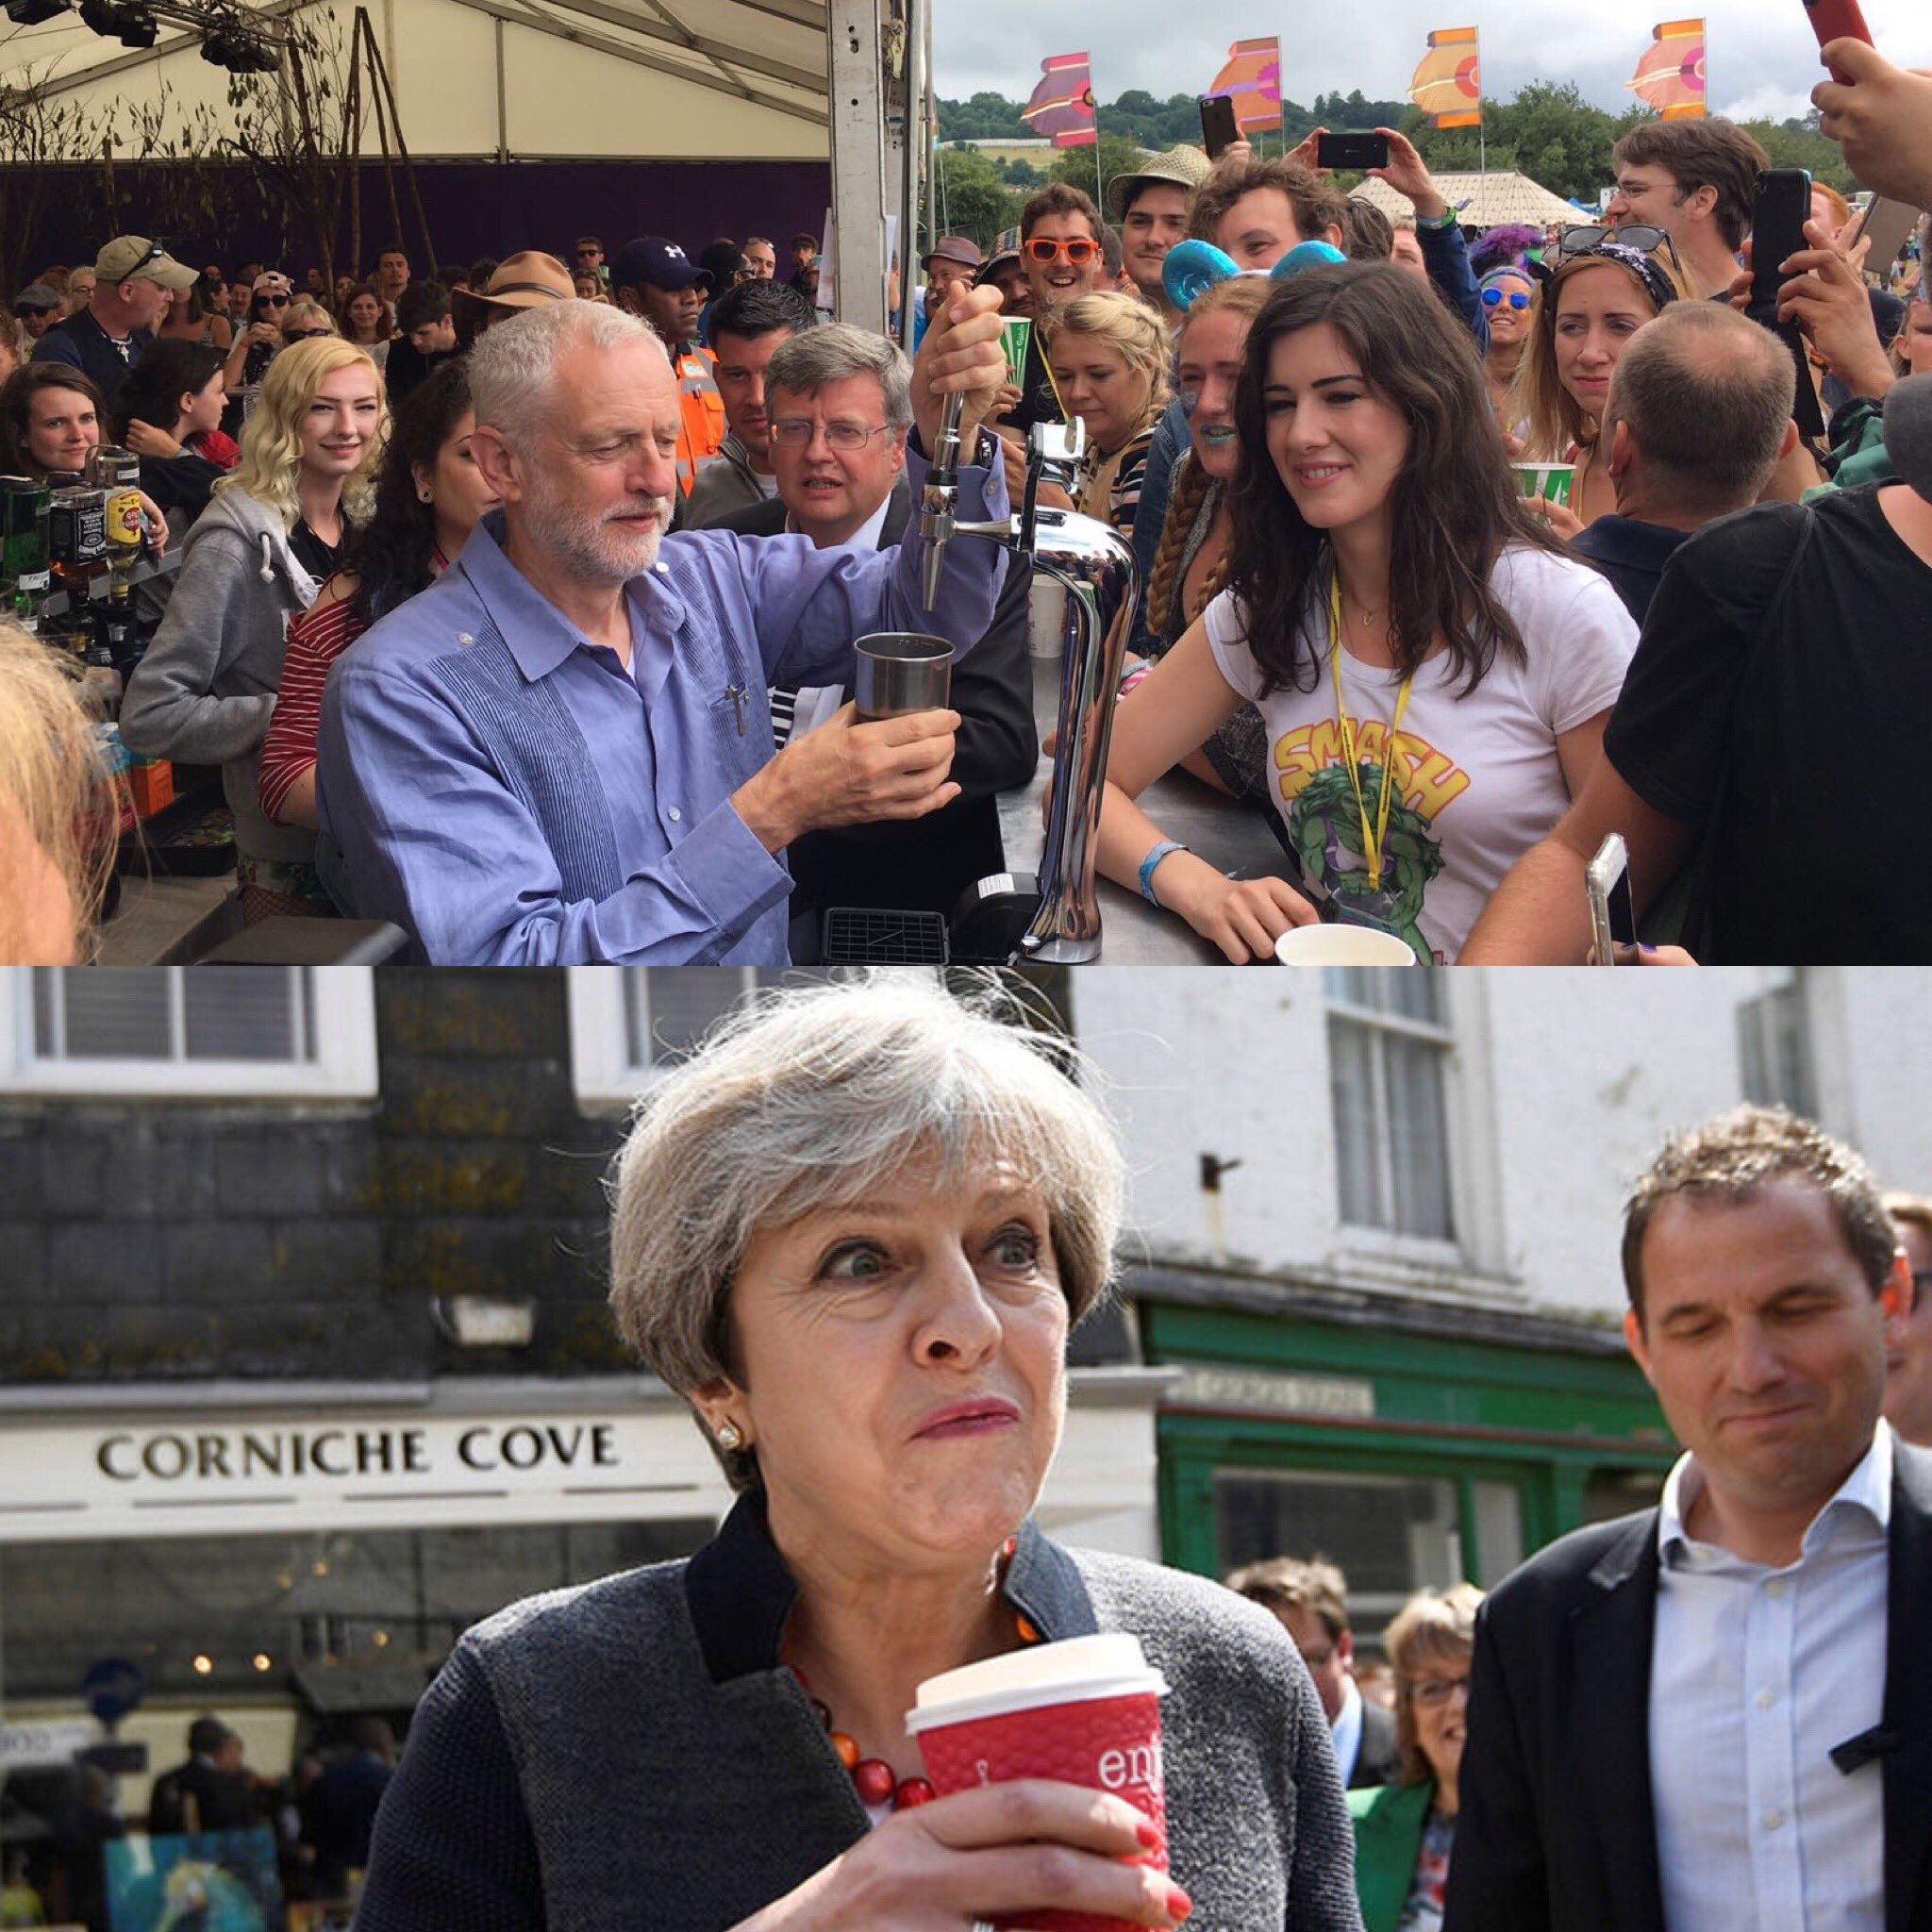 Labour and Conservative top beverage moments 2017. https://t.co/BK6KKK8gau